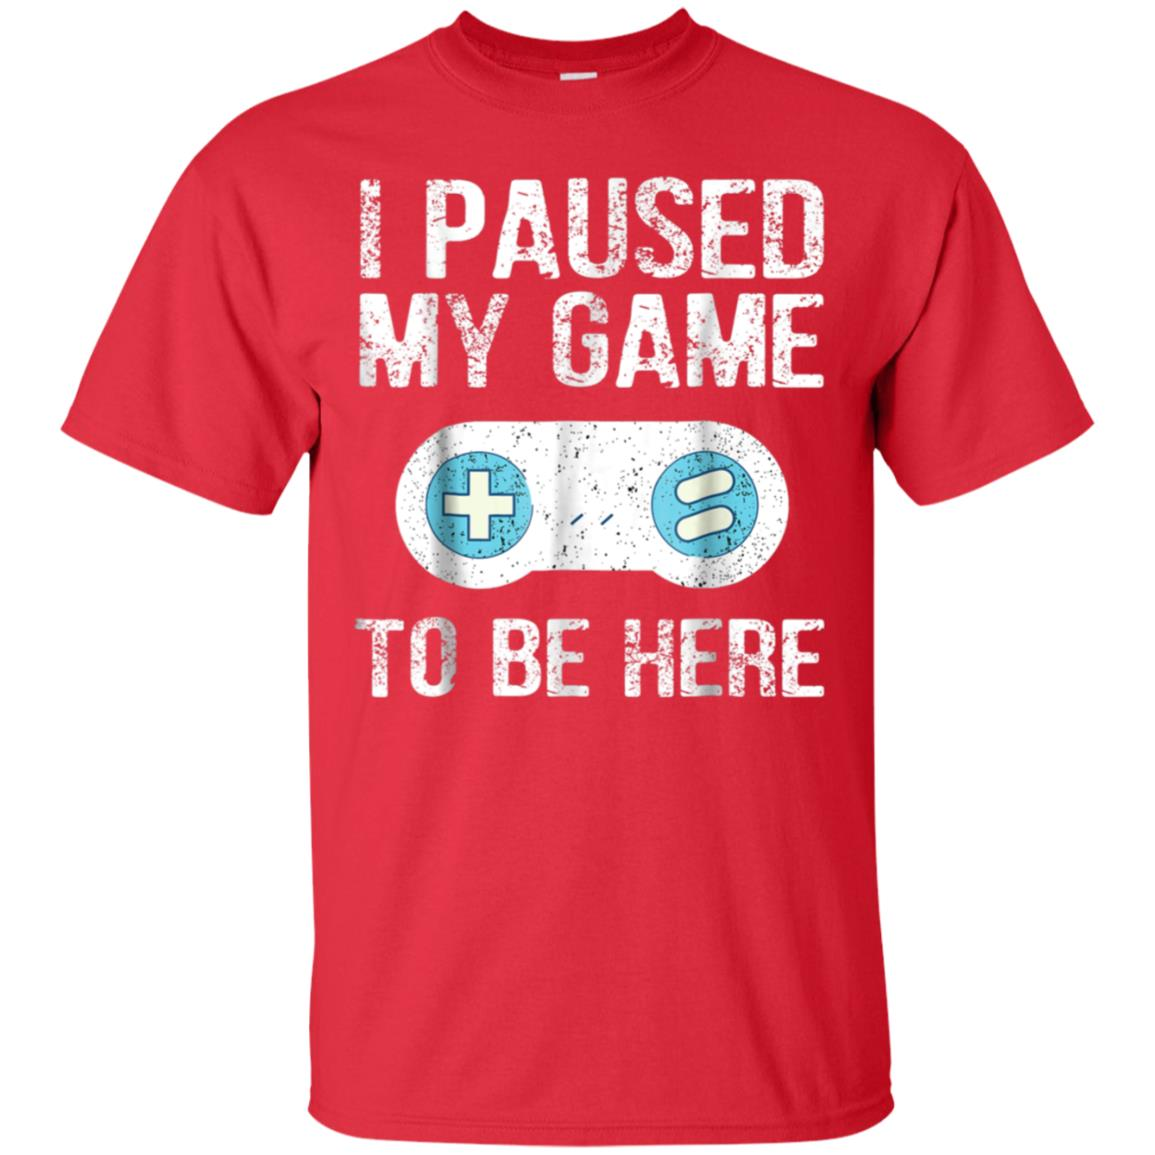 I Paused My Game To Be Here Gamer Gift T-Shirt for Grandson 99promocode